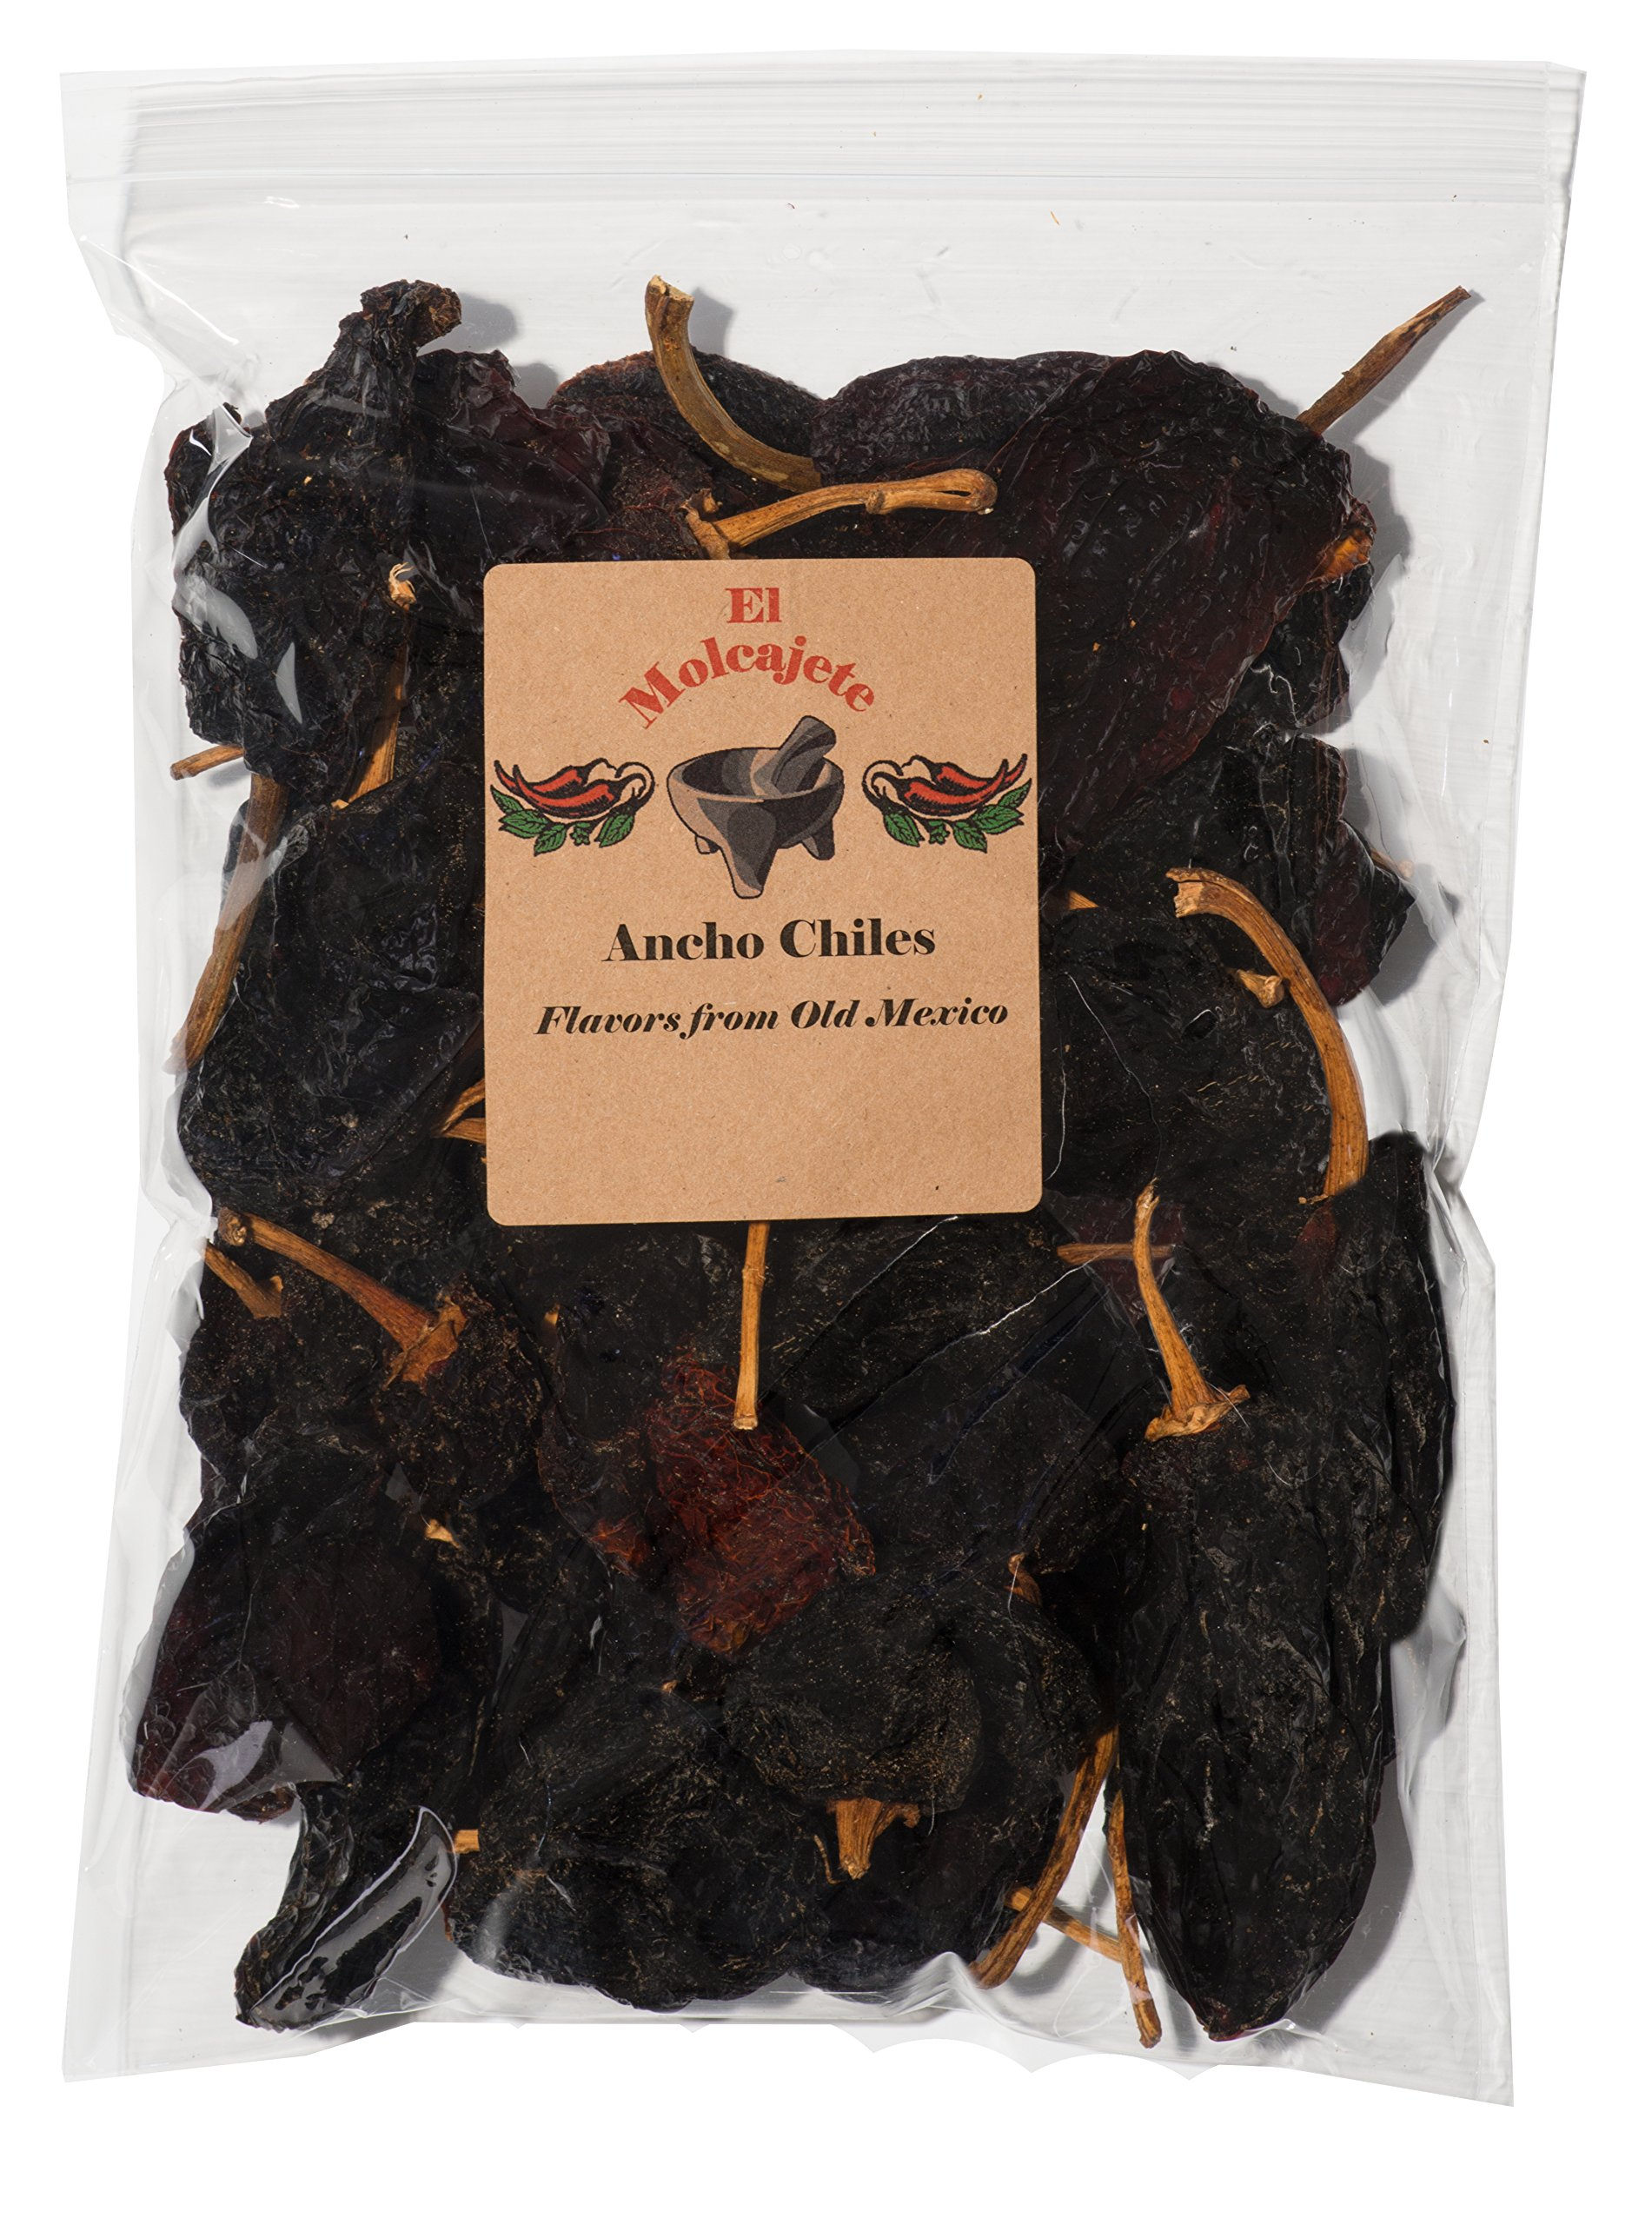 Dried Ancho Chiles Peppers El Molcajete Brand 16 oz Resealable Bag - Mexican Recipes, Chilis, Tamales, Salsa, Chili, Meats, Soups, Mole, Stews & BBQ